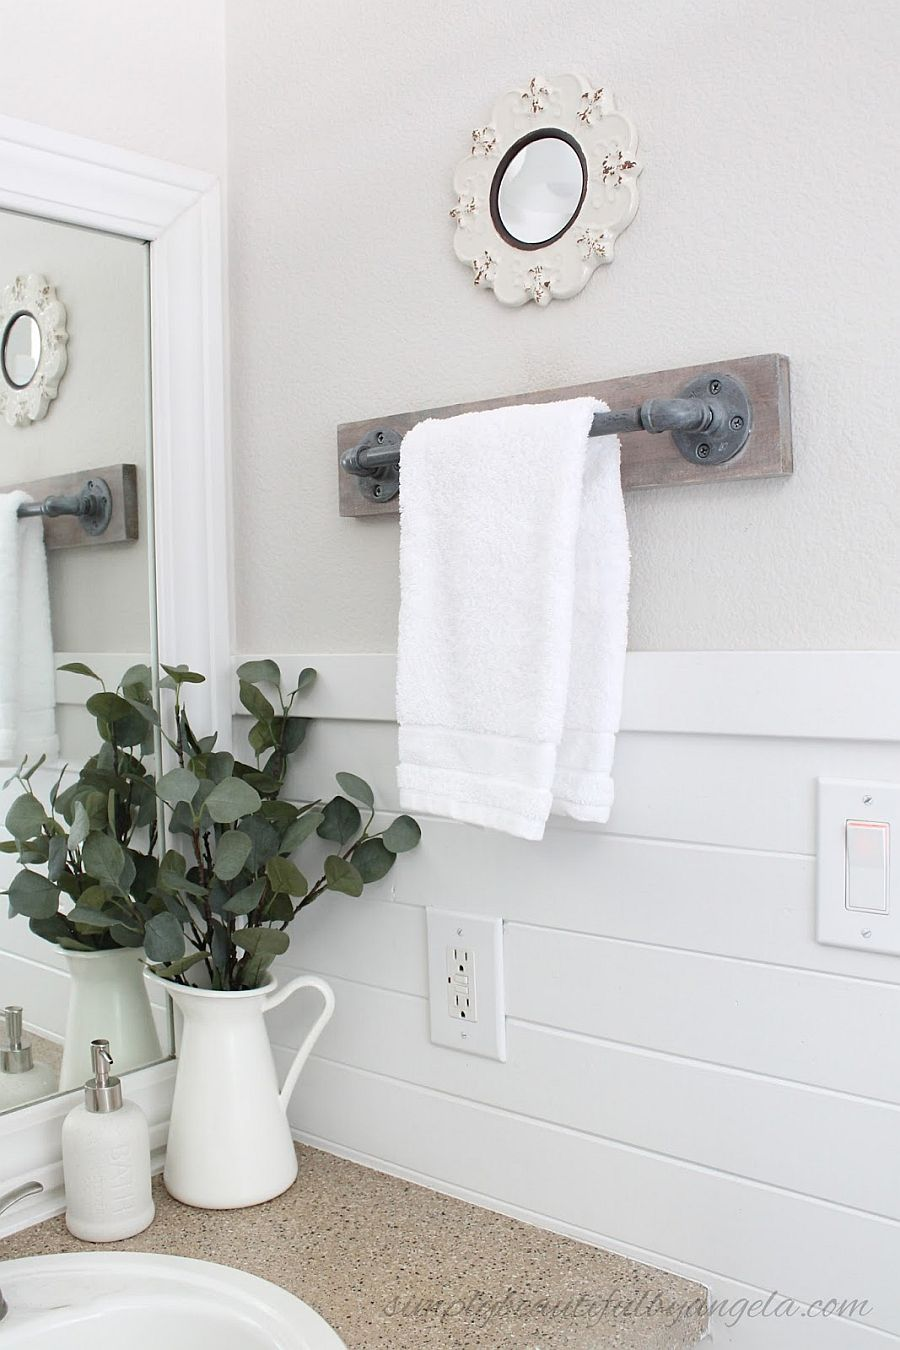 DIY industrial style towel rack with pipe for the small bathroom